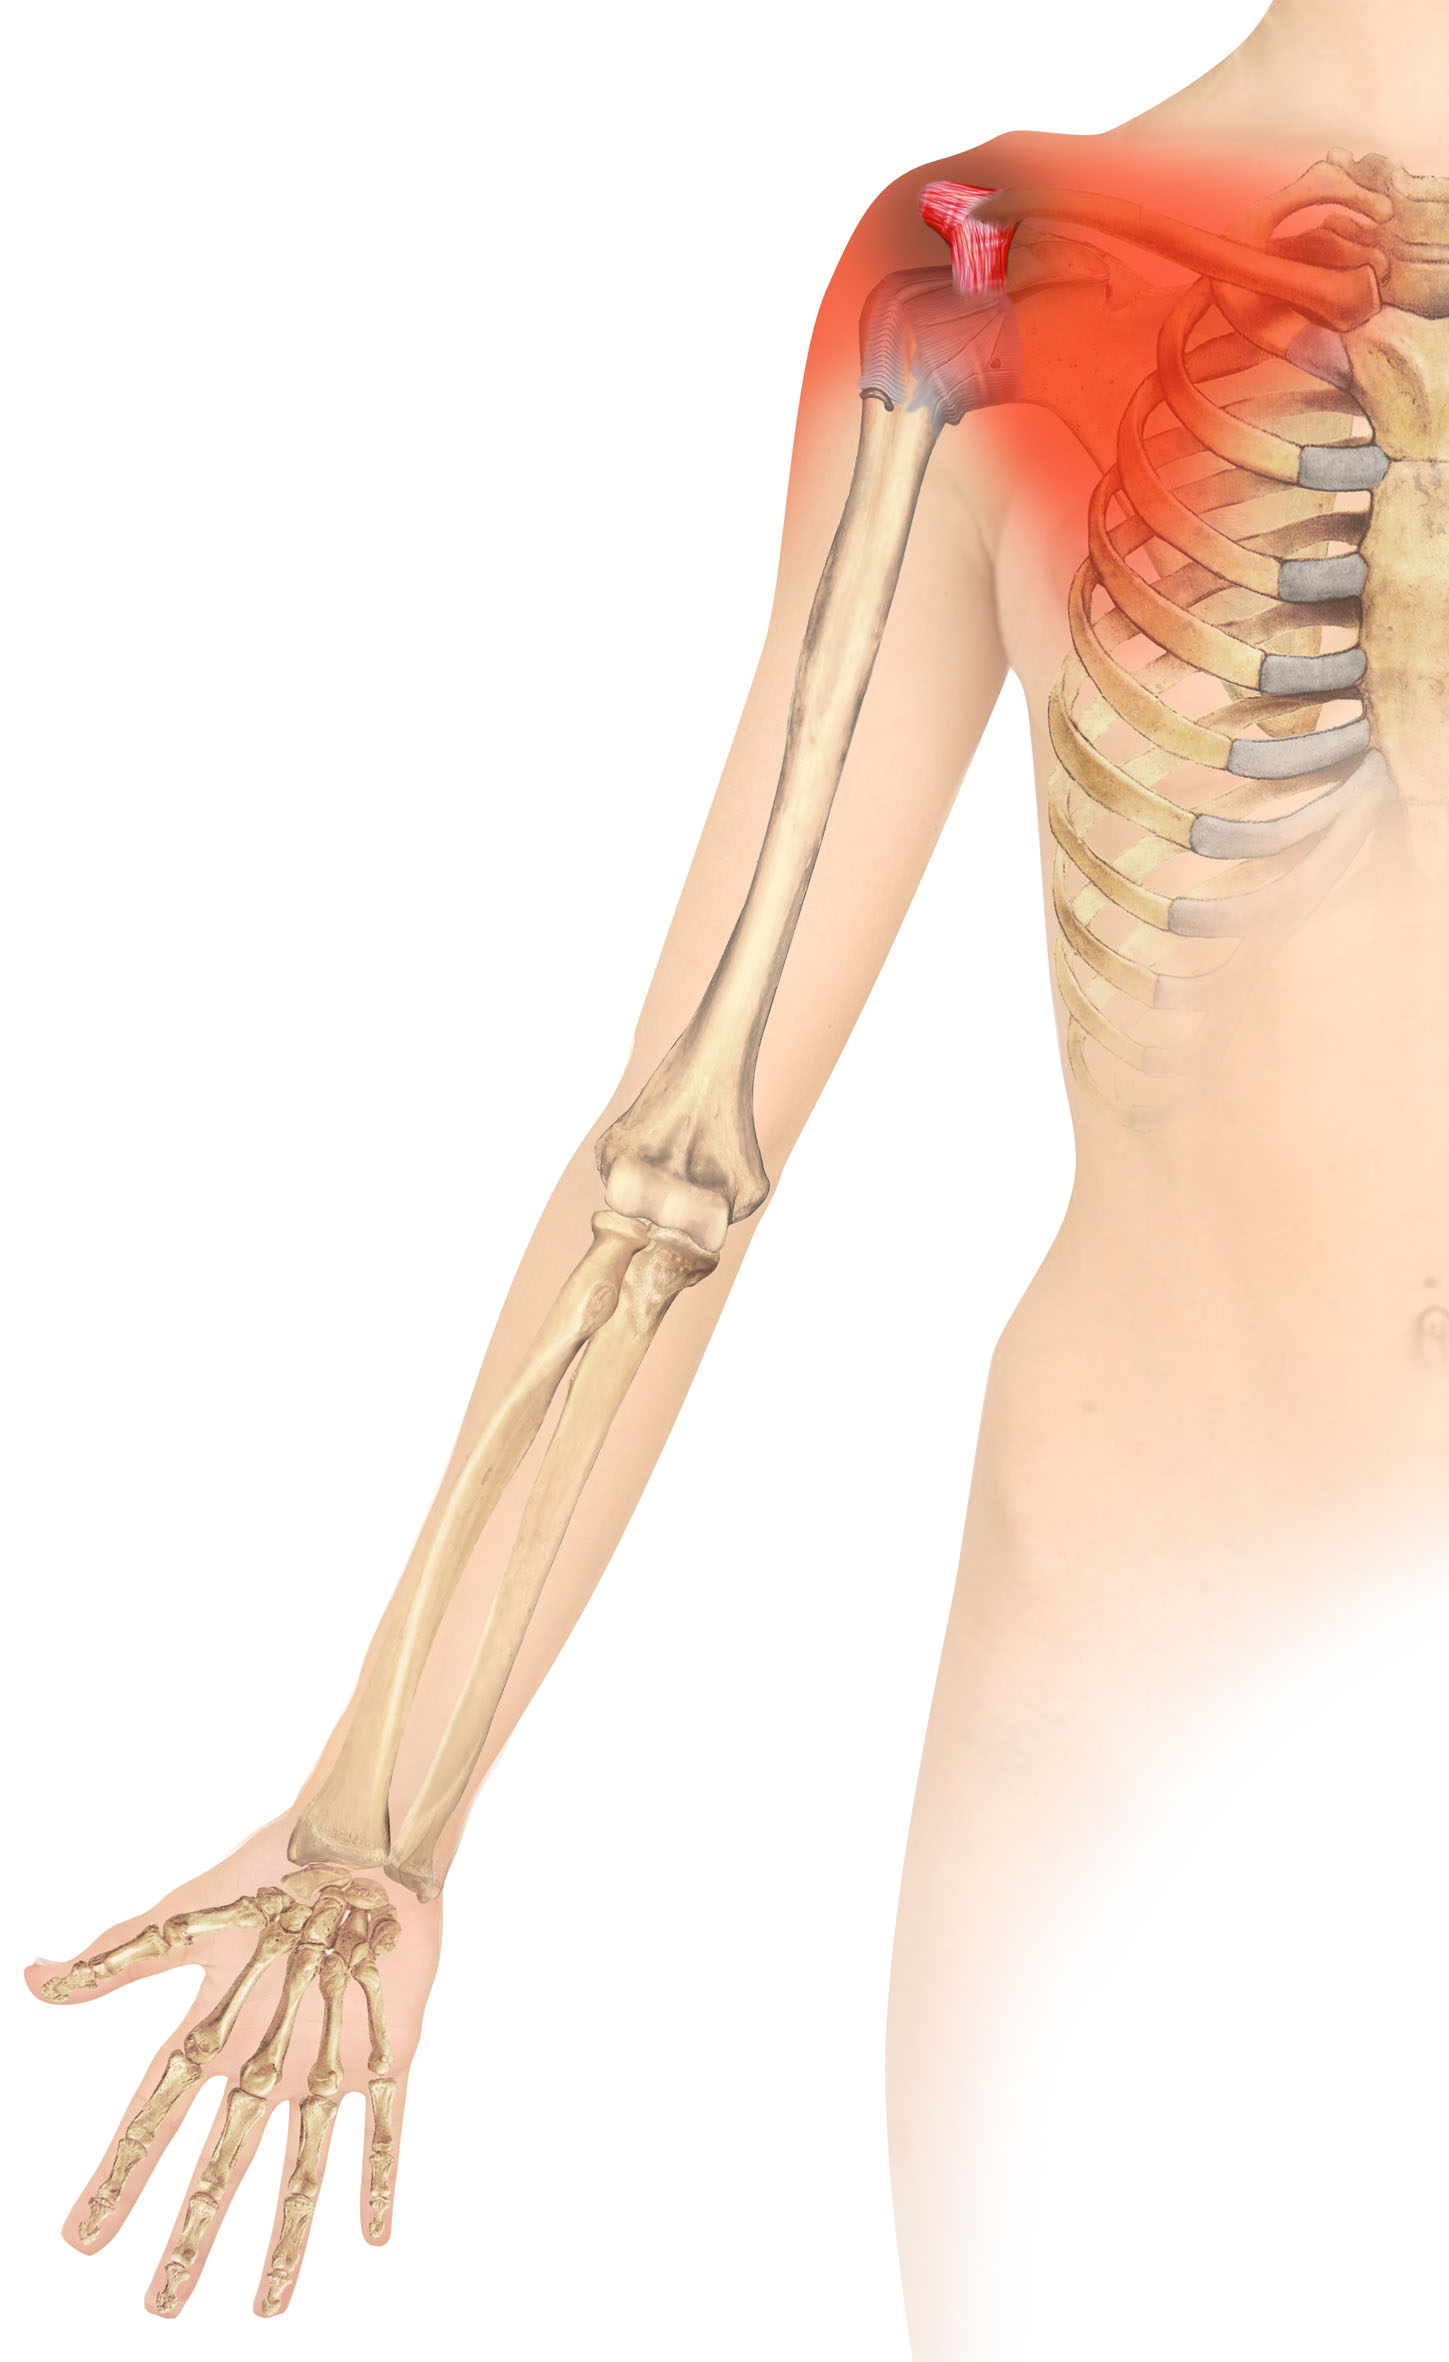 VIDEO INSIDE) Coracoid Pain Test: A New Clinical Sign of Shoulder ...